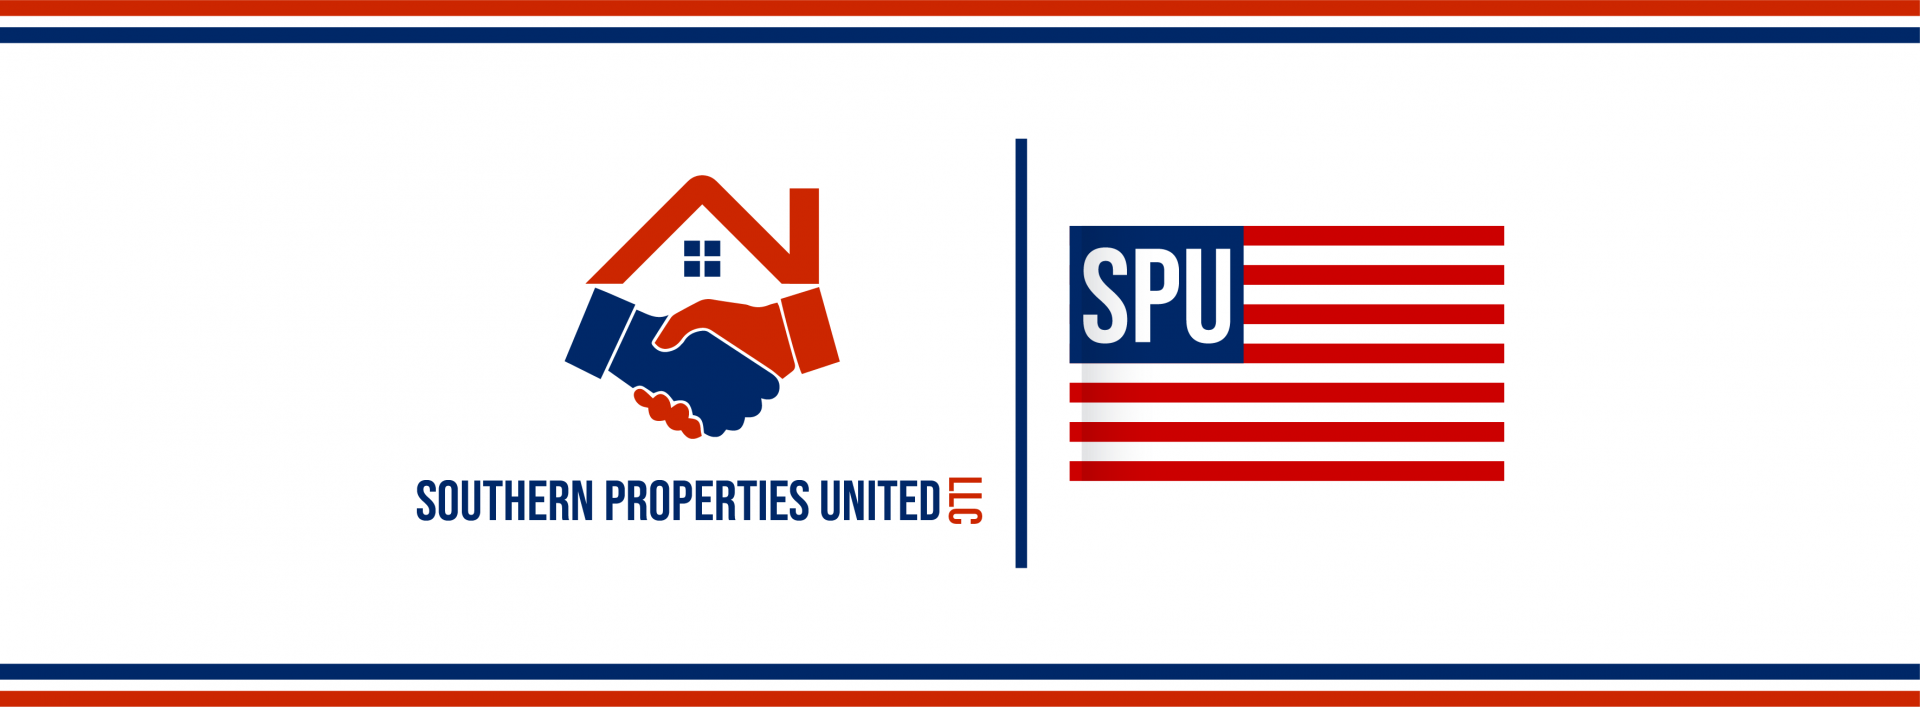 Southern Properties United logo